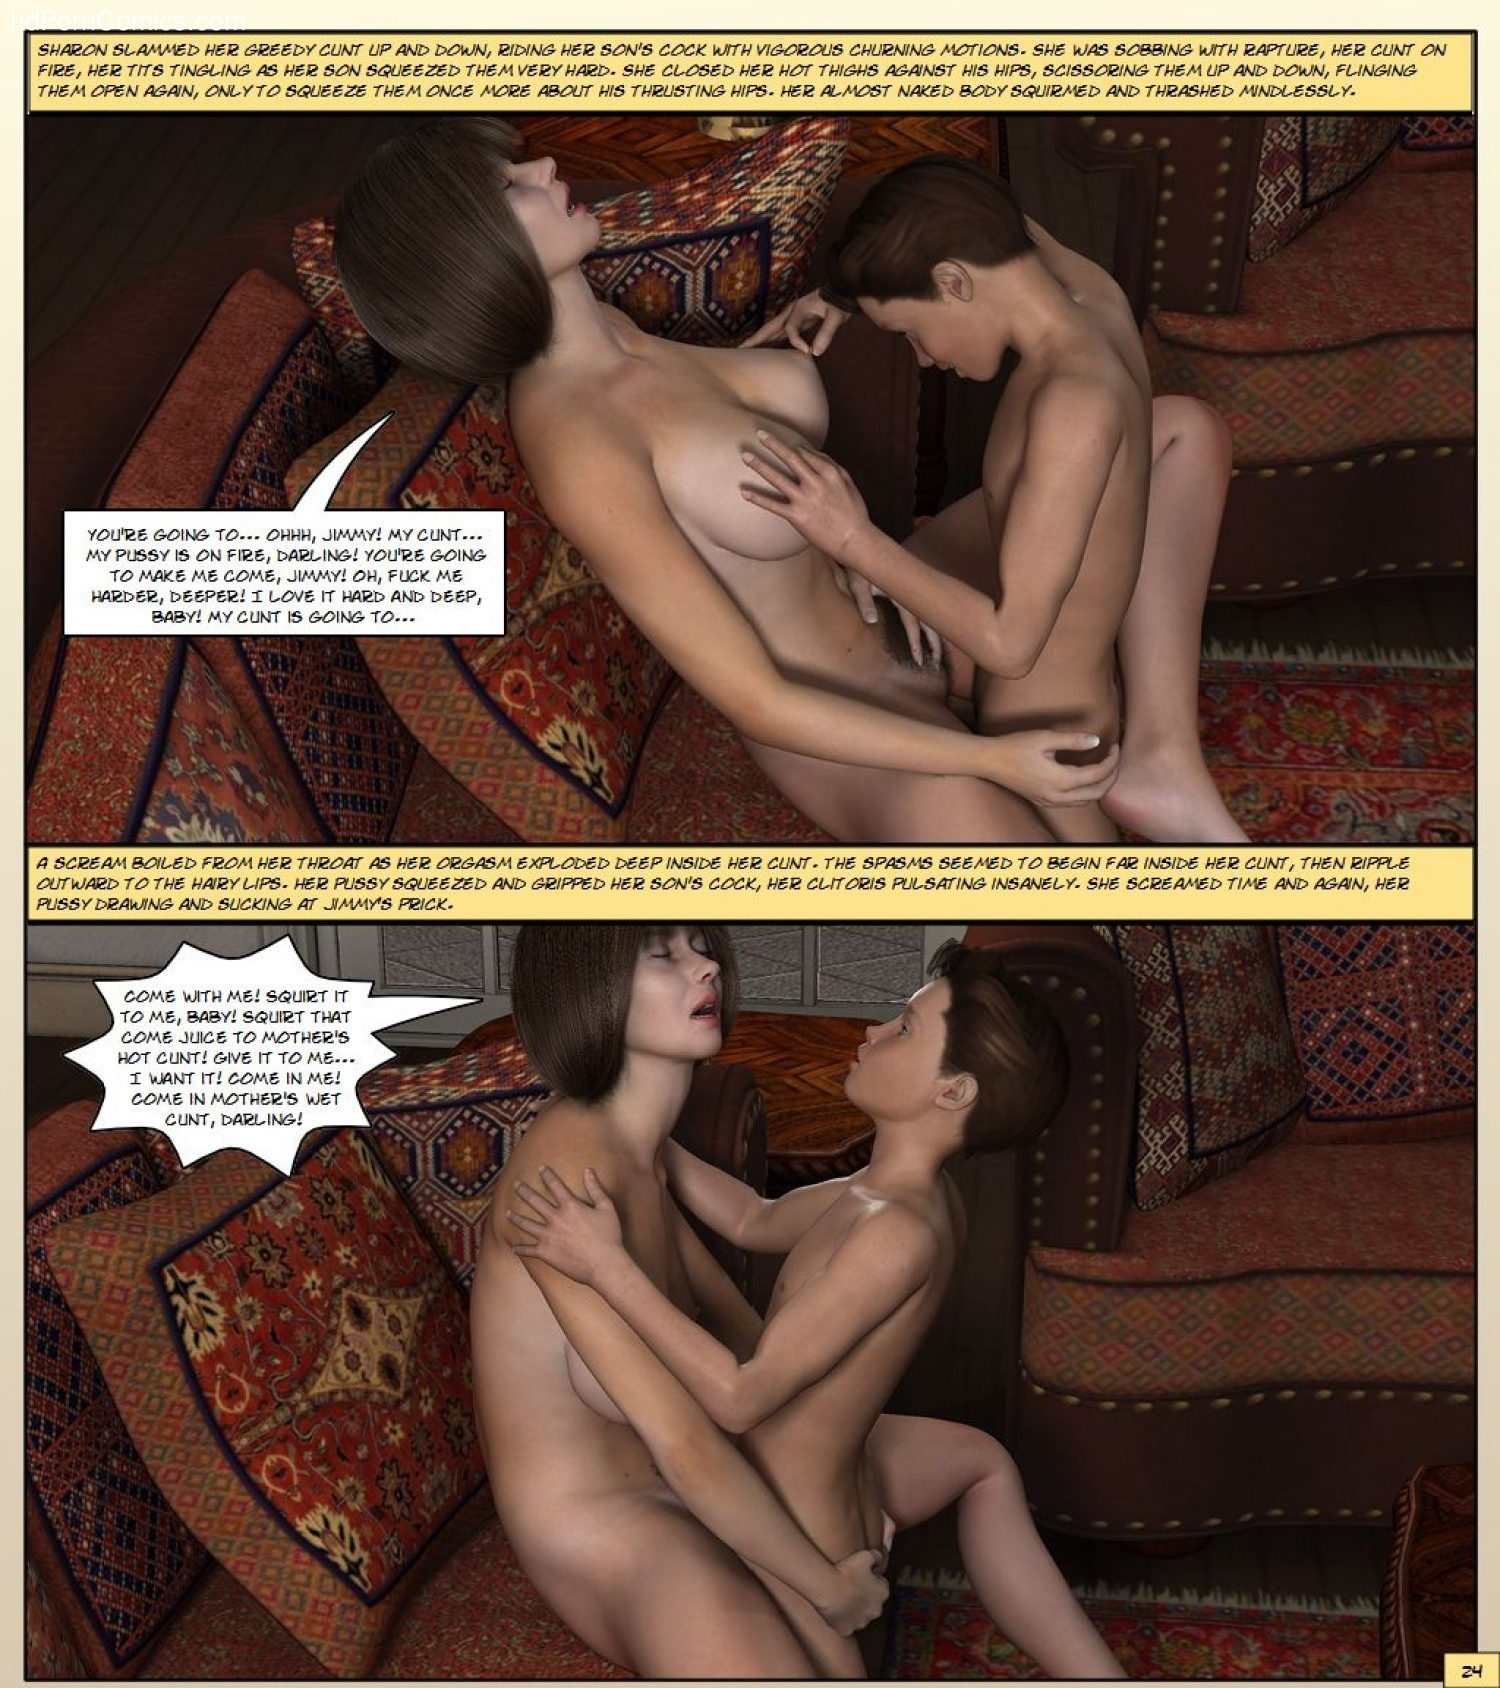 Kathy Andrews – Mother Gets Horny25 free sex comic